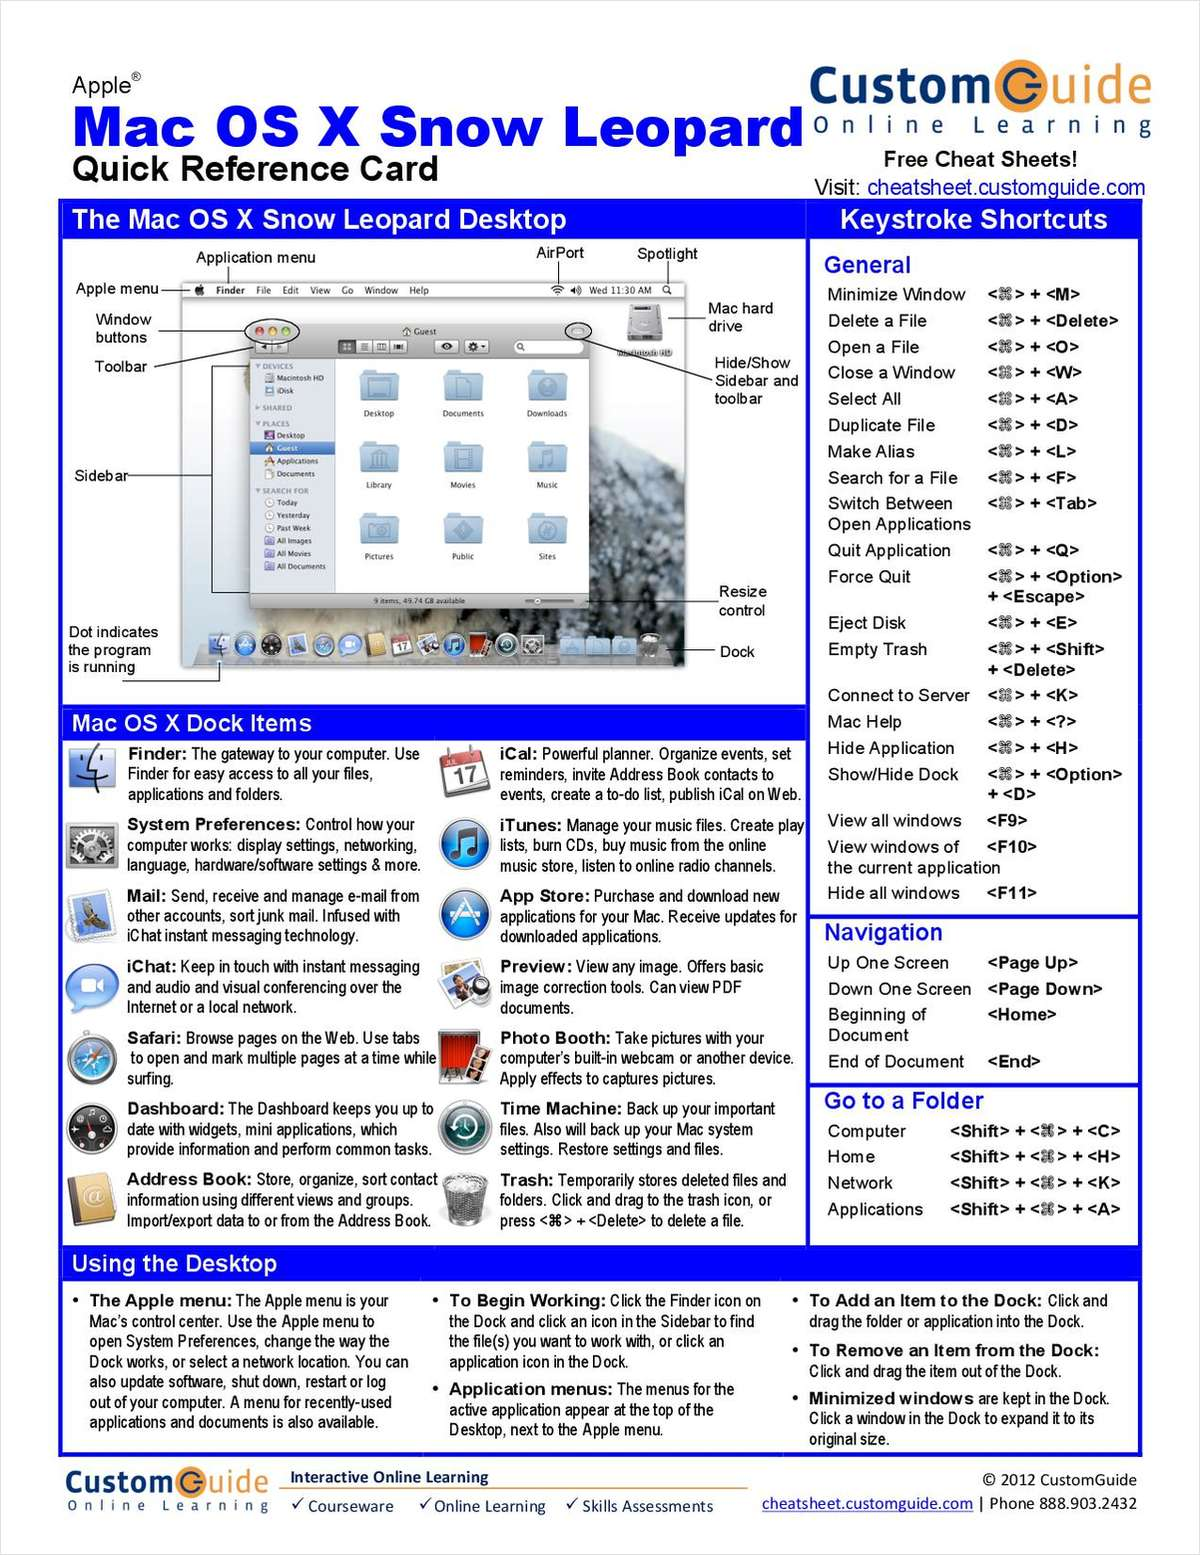 Mac OS X Snow Leopard -- Free Quick Reference Card